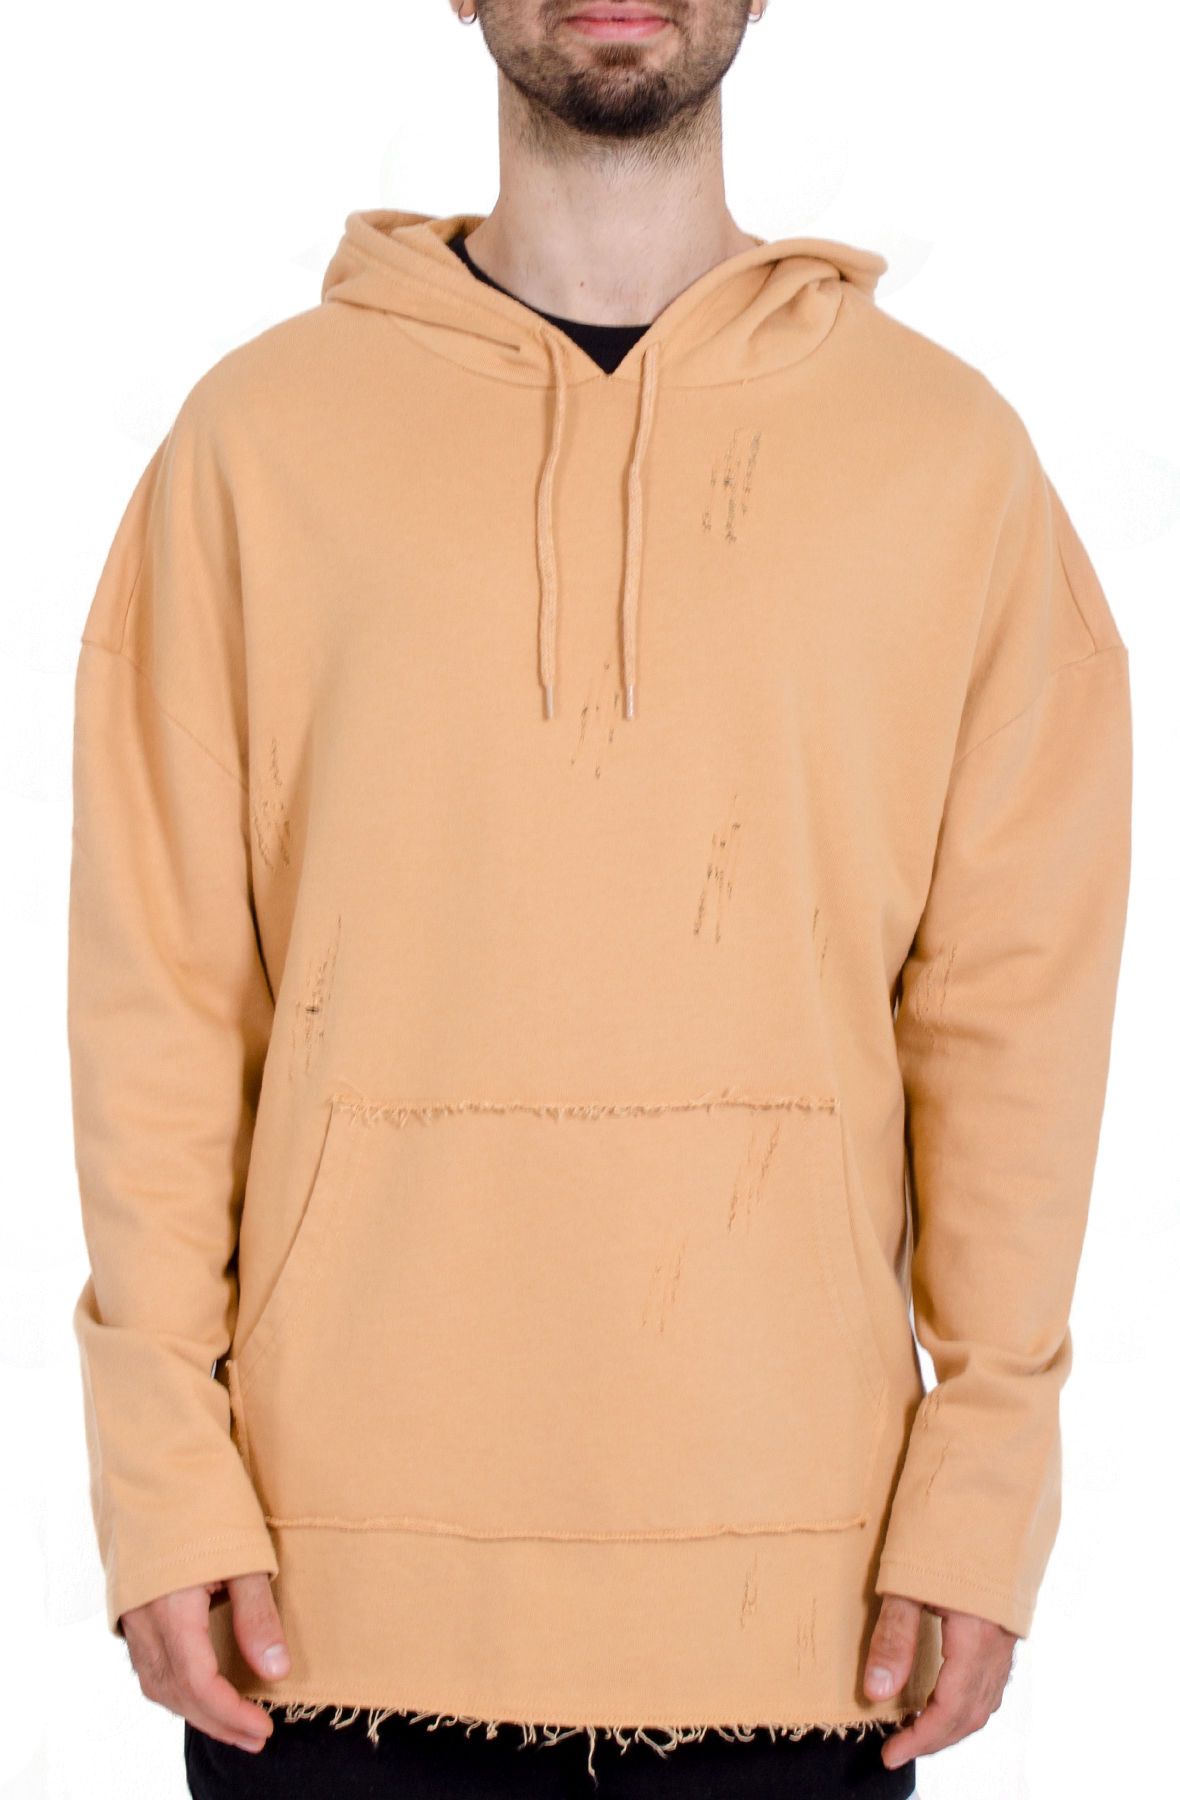 Oversized Distressed Hoodie / Tan